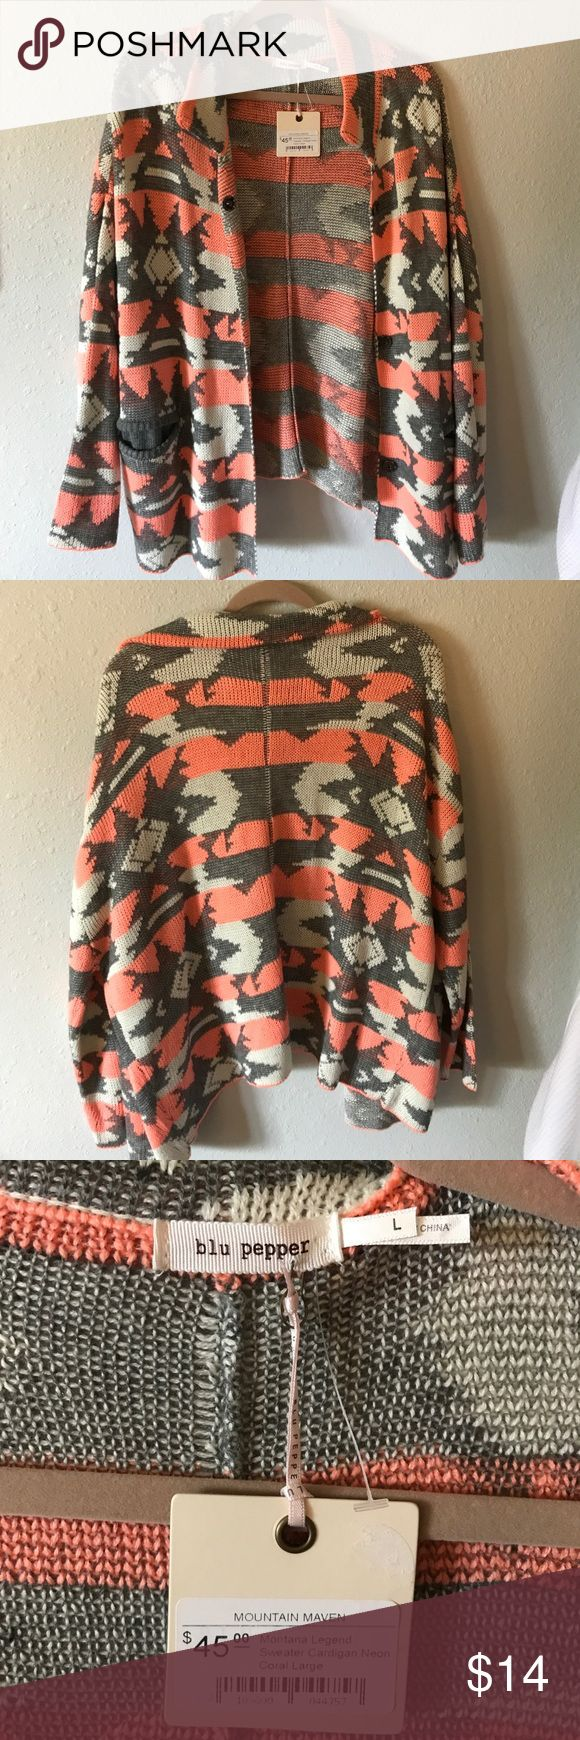 Tribal Print Cardigan Pink, grey, and cream colored knitted cardigan Blu Pepper Sweaters Cardigans